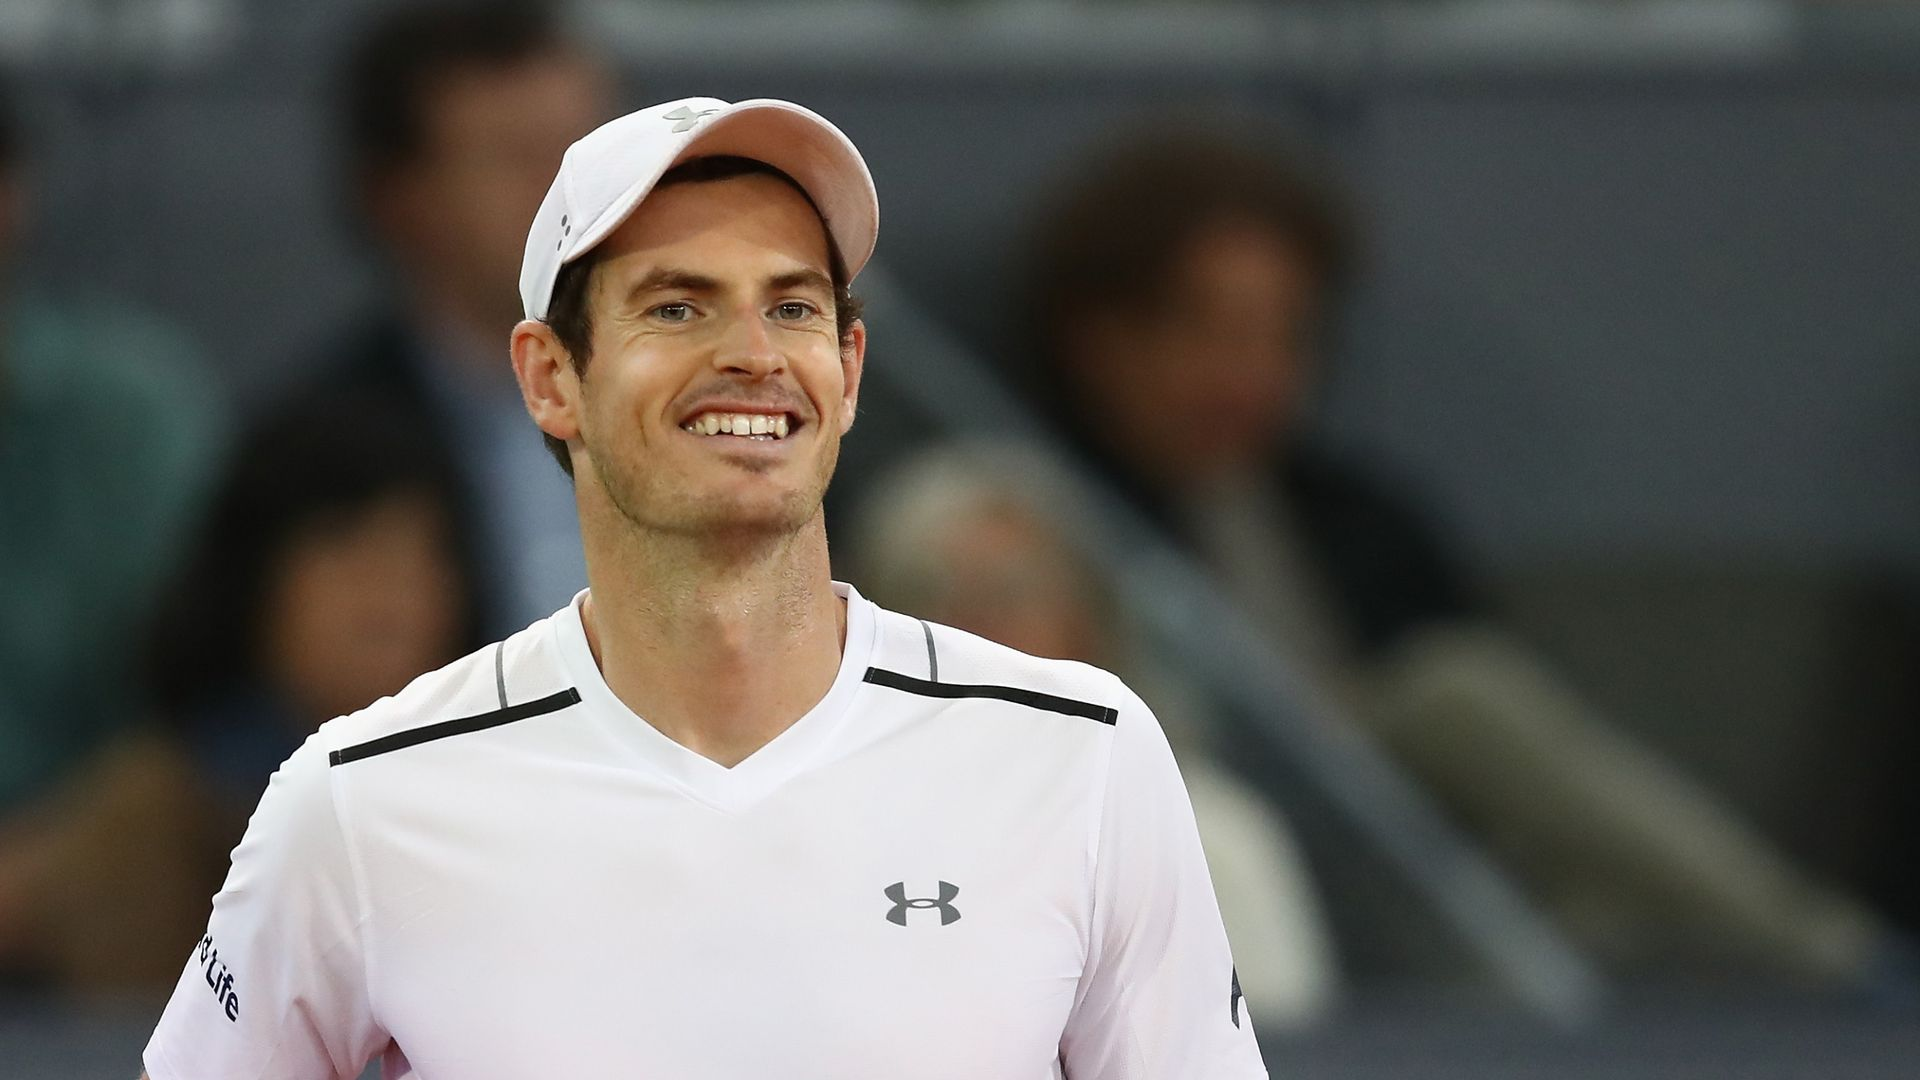 Murray: I'm much better than the other guys!